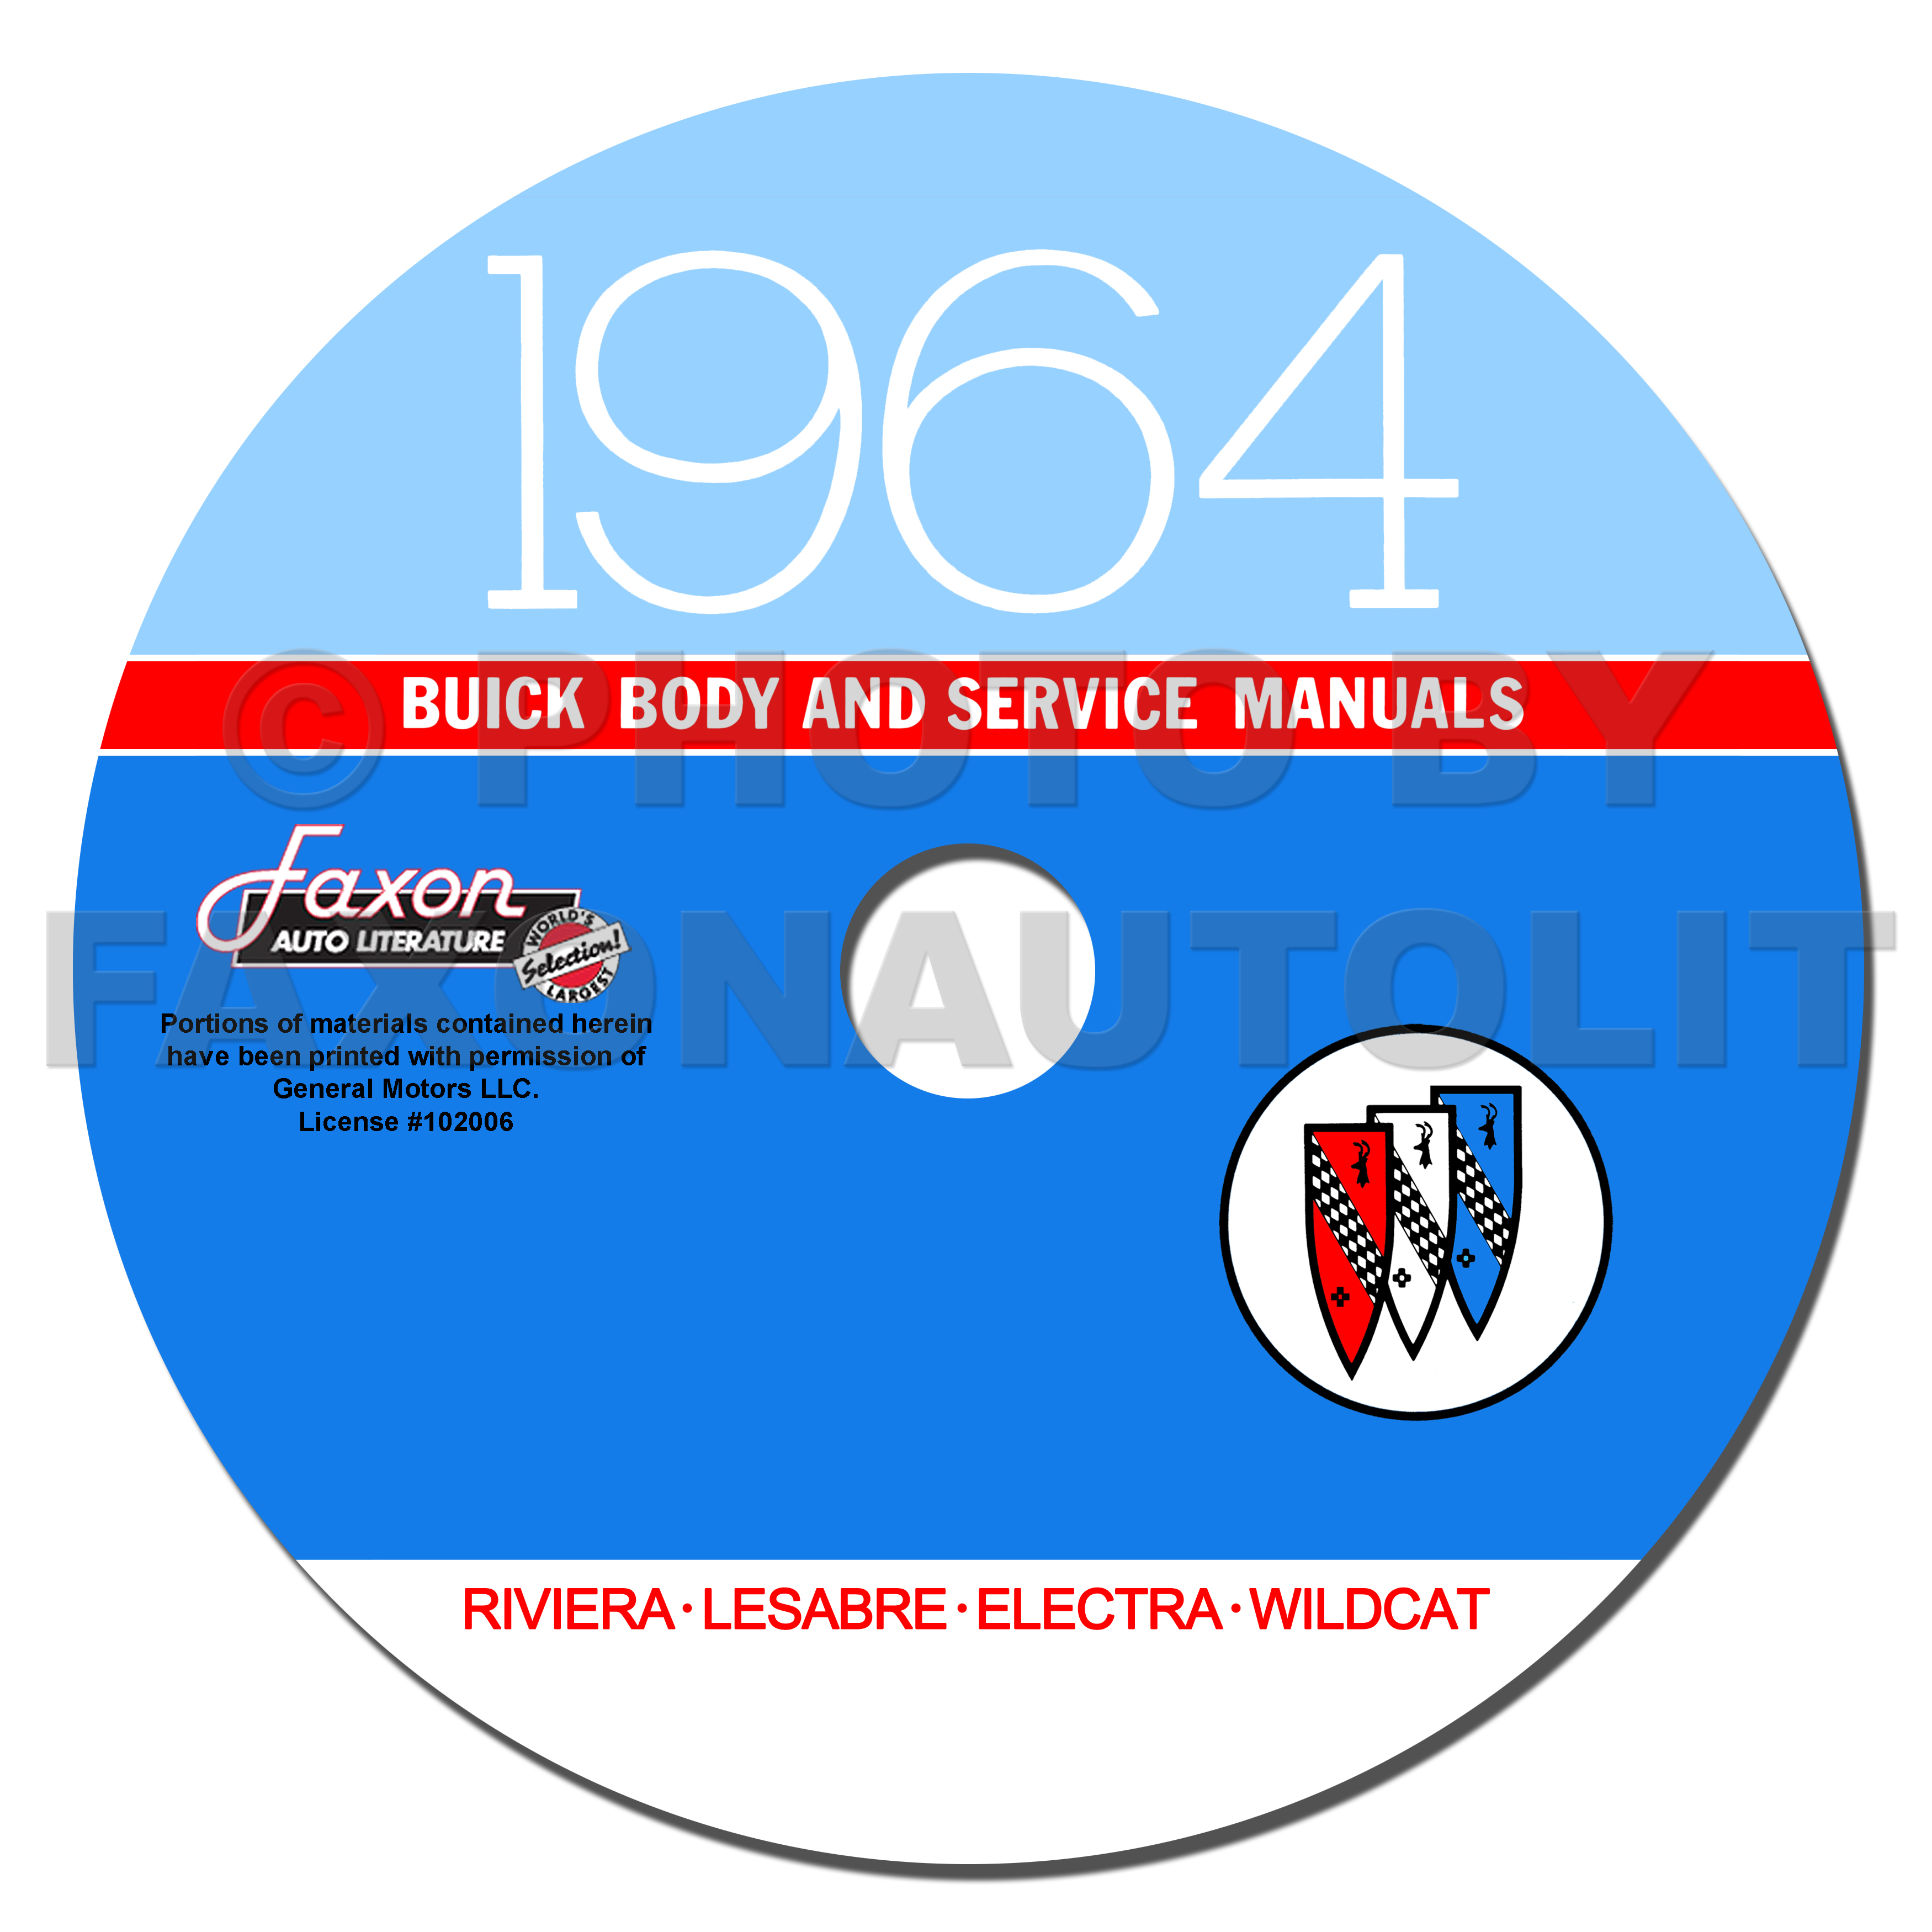 1964 Buick CD-ROM Shop Manual & Body Manual